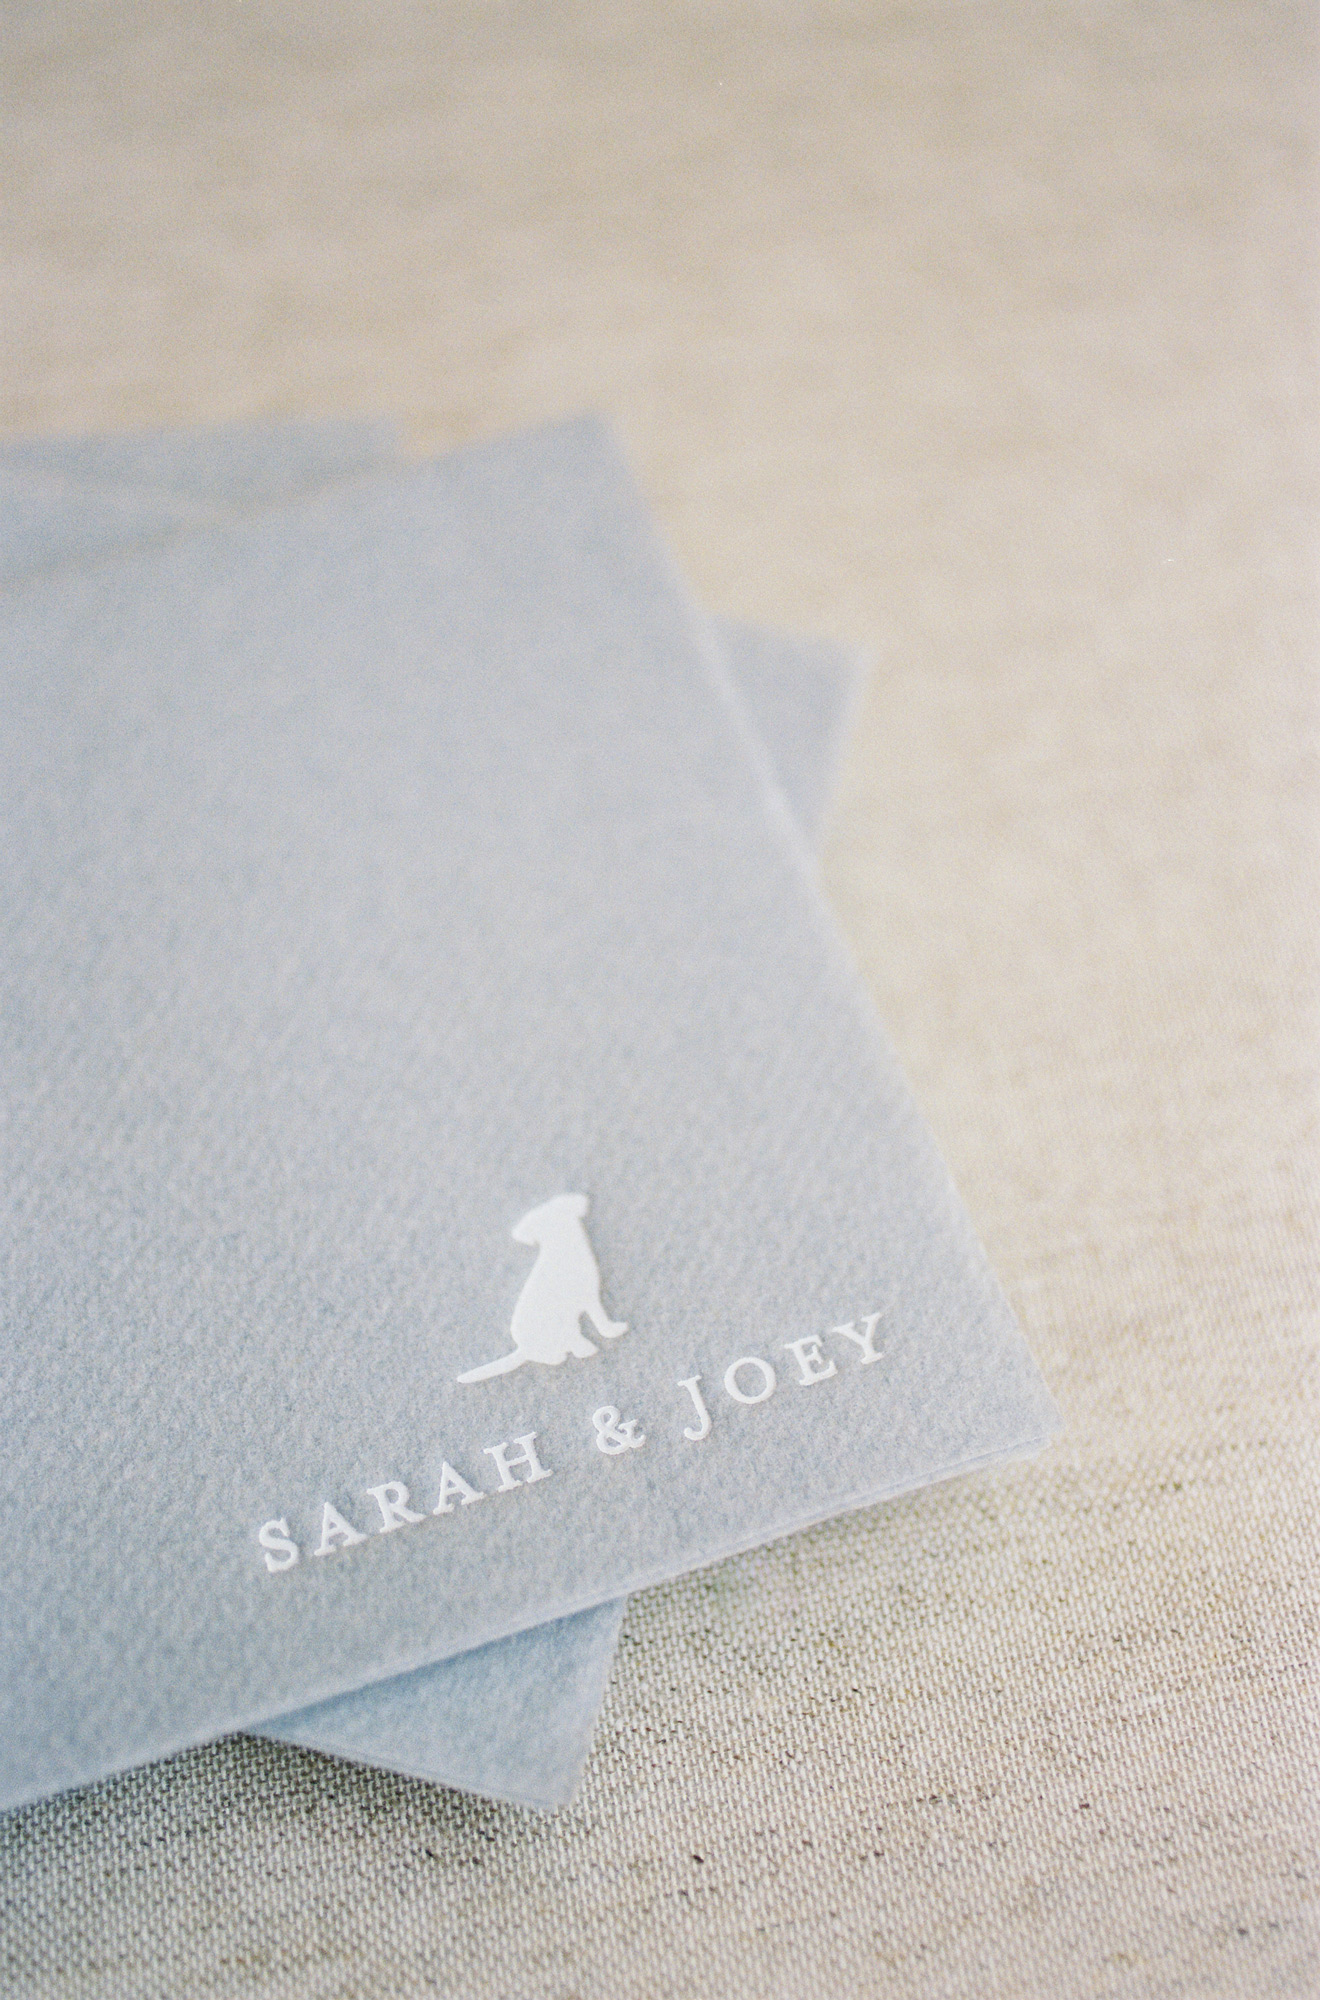 gray save the dates with dog icon and couple's names